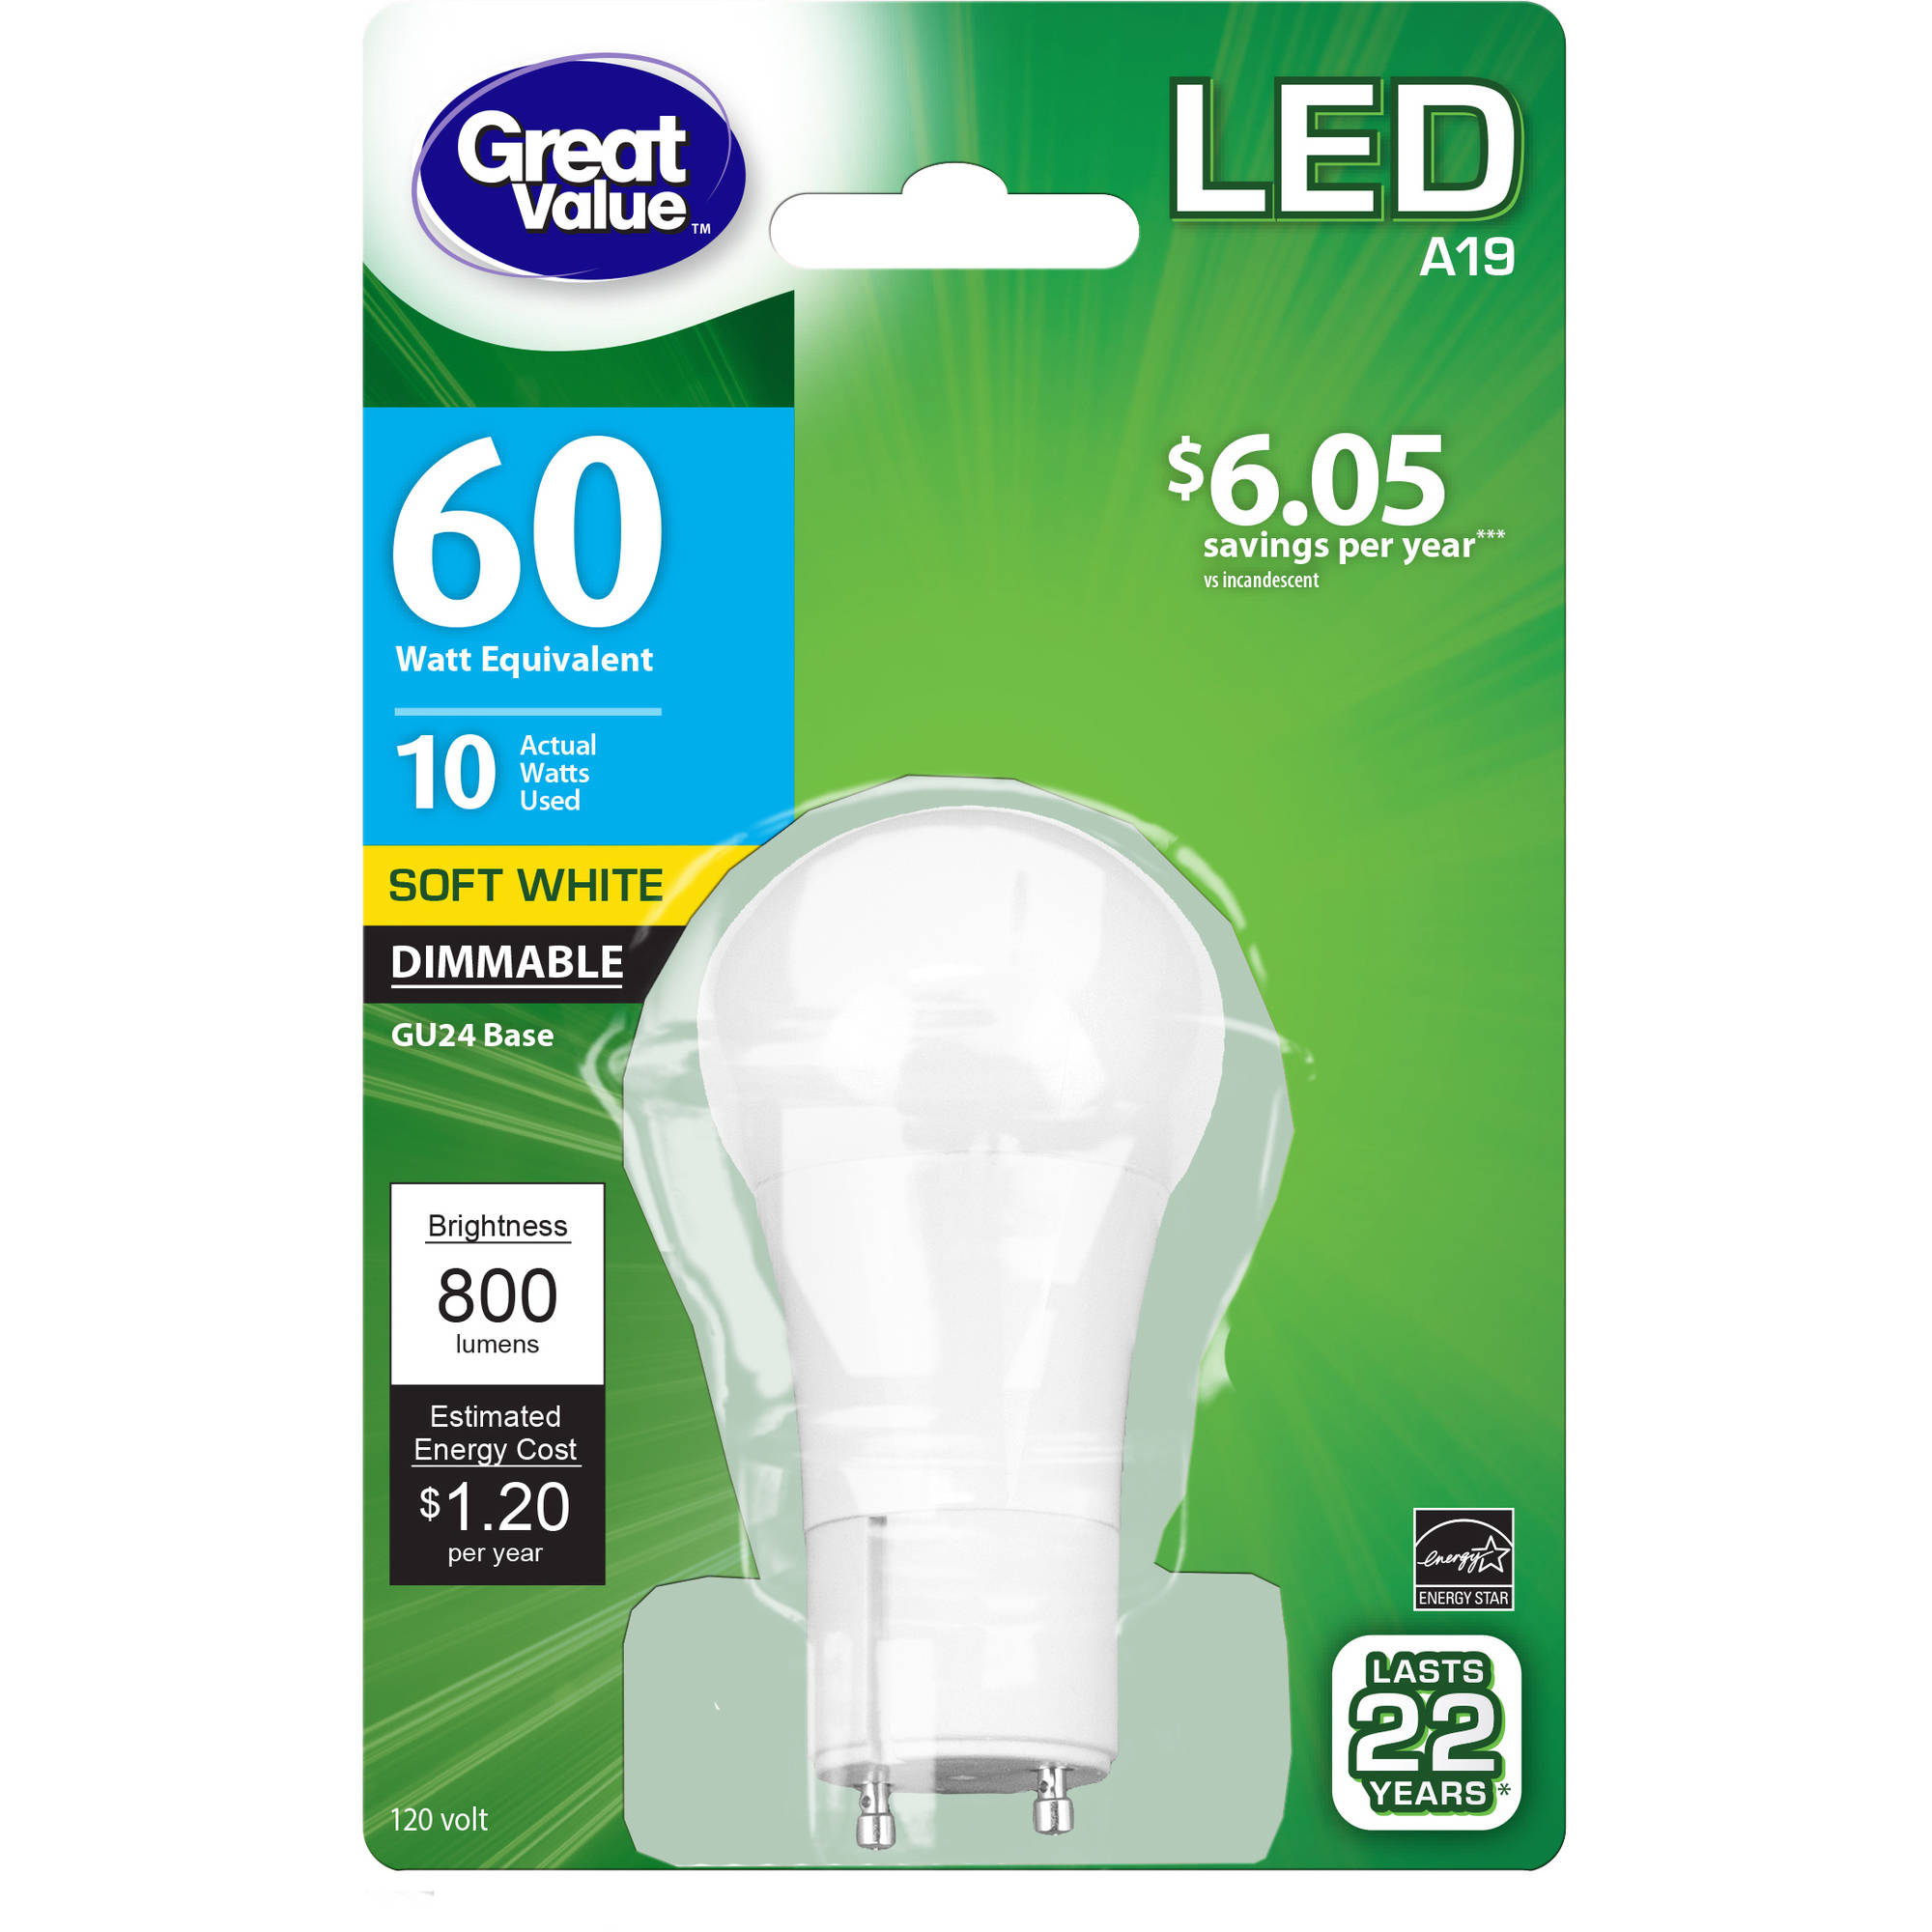 Led Lights At Walmart Great Value Led Light Bulb 10w 60w Equivalent A19 Lamp Gu24 Base Dimmable Soft White 1 Pack